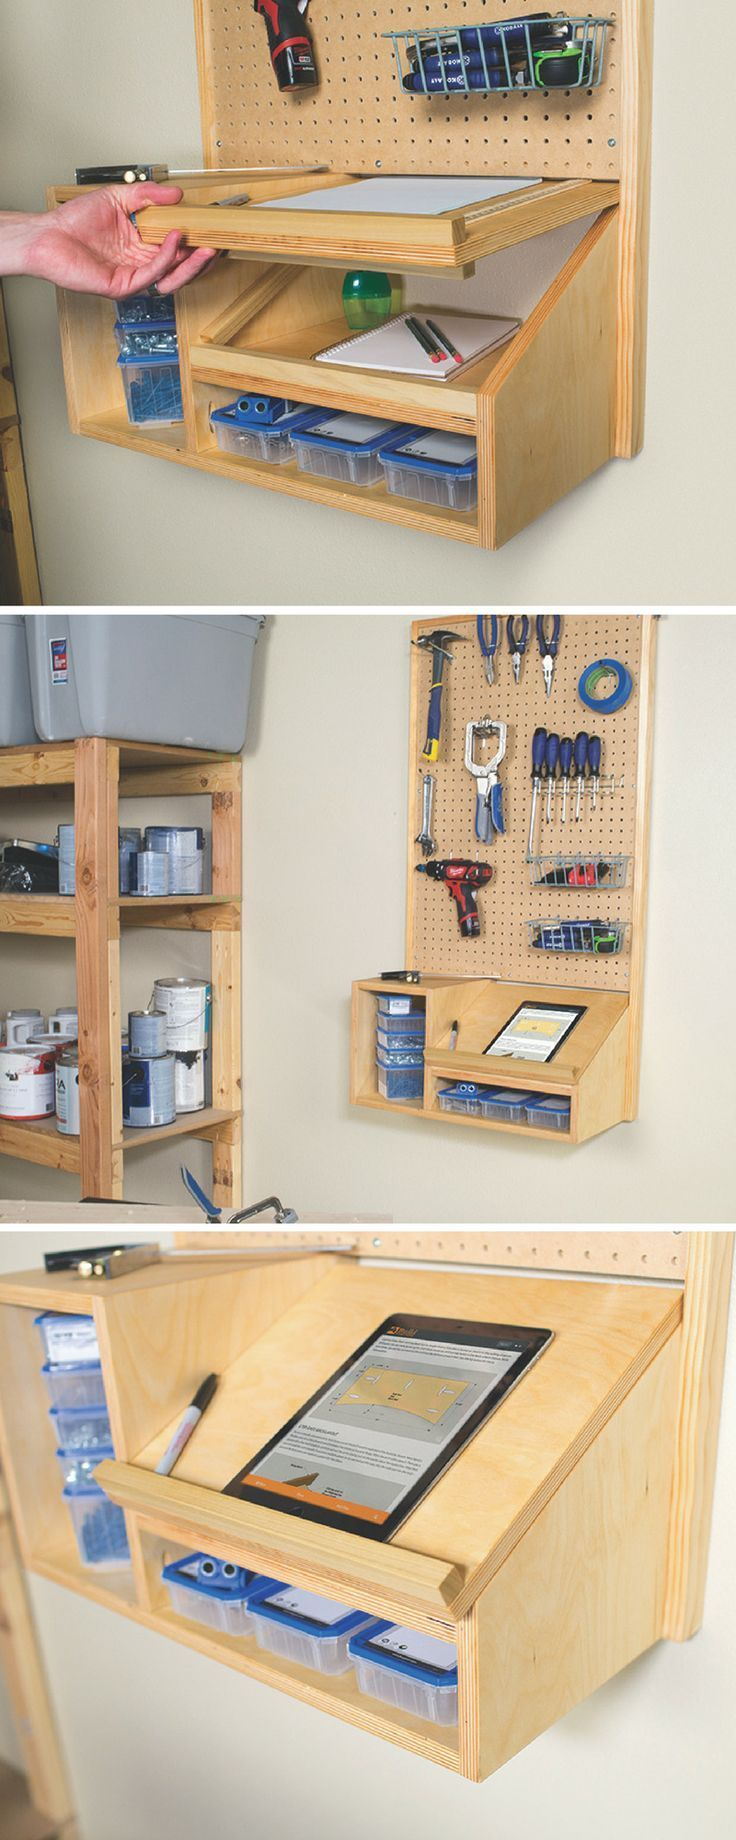 Keeping your workspace organized is always a chall…